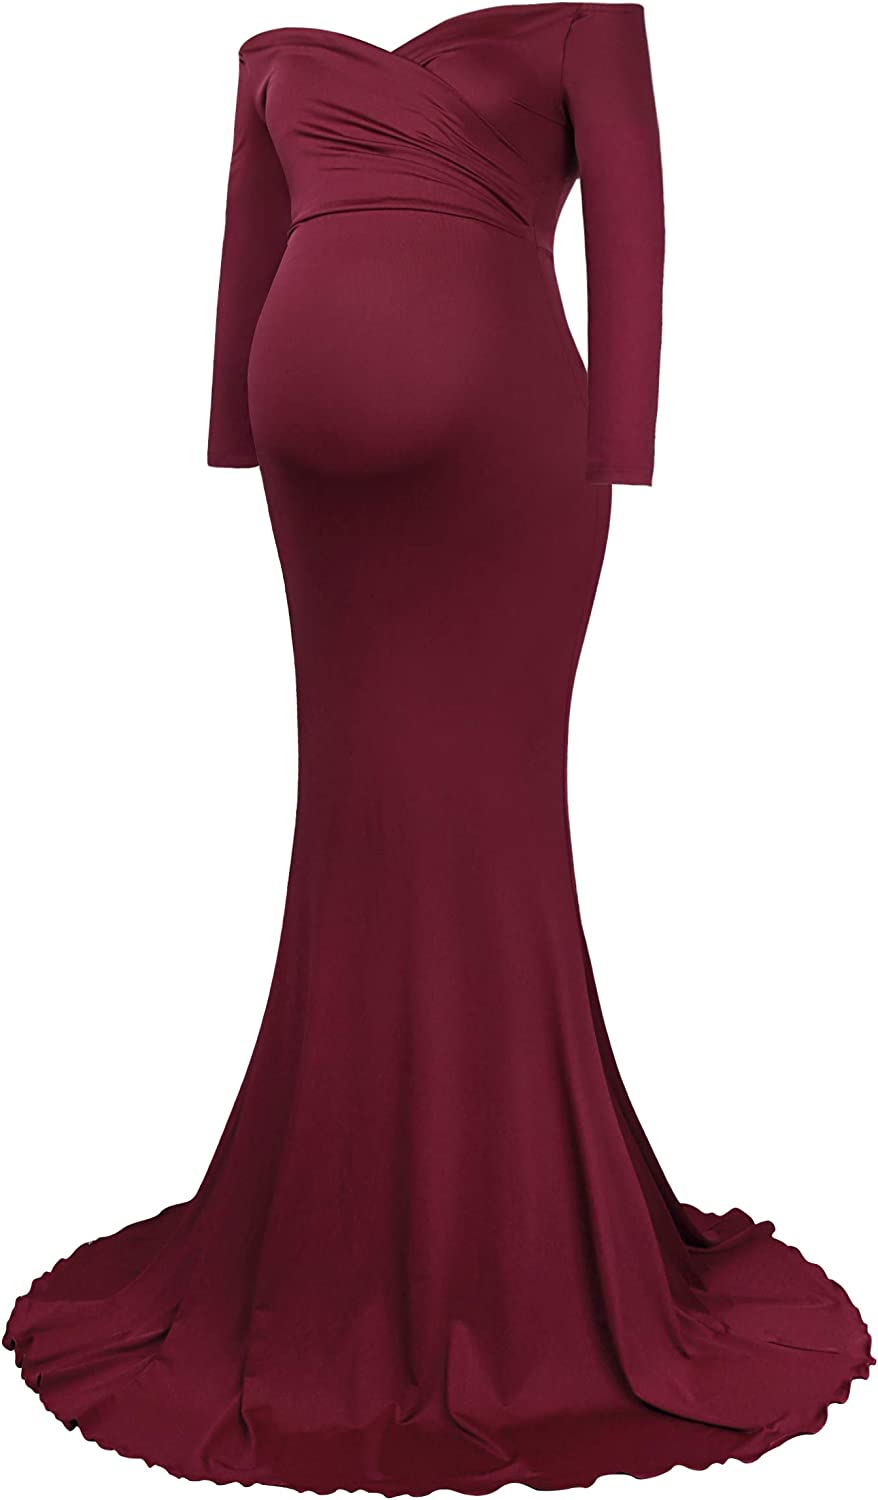 Molliya Maternity Long Dress Off Shoulder Elegant Fitted Gown Stretchy Maxi Photography Dress: Clothing